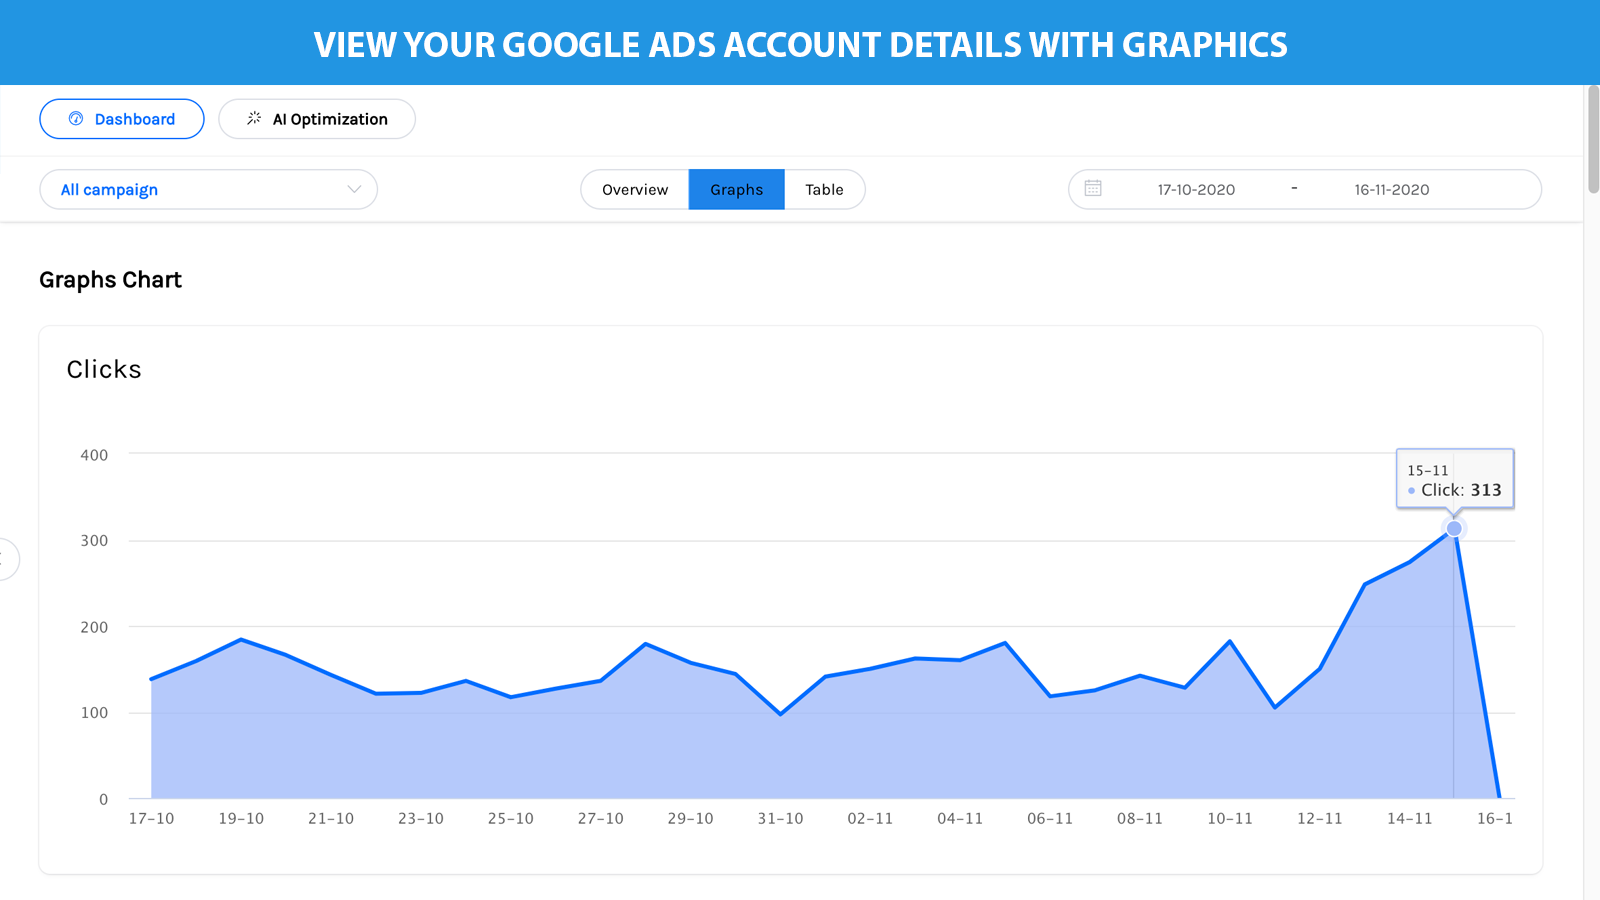 View detail information of your ads account with graph charts